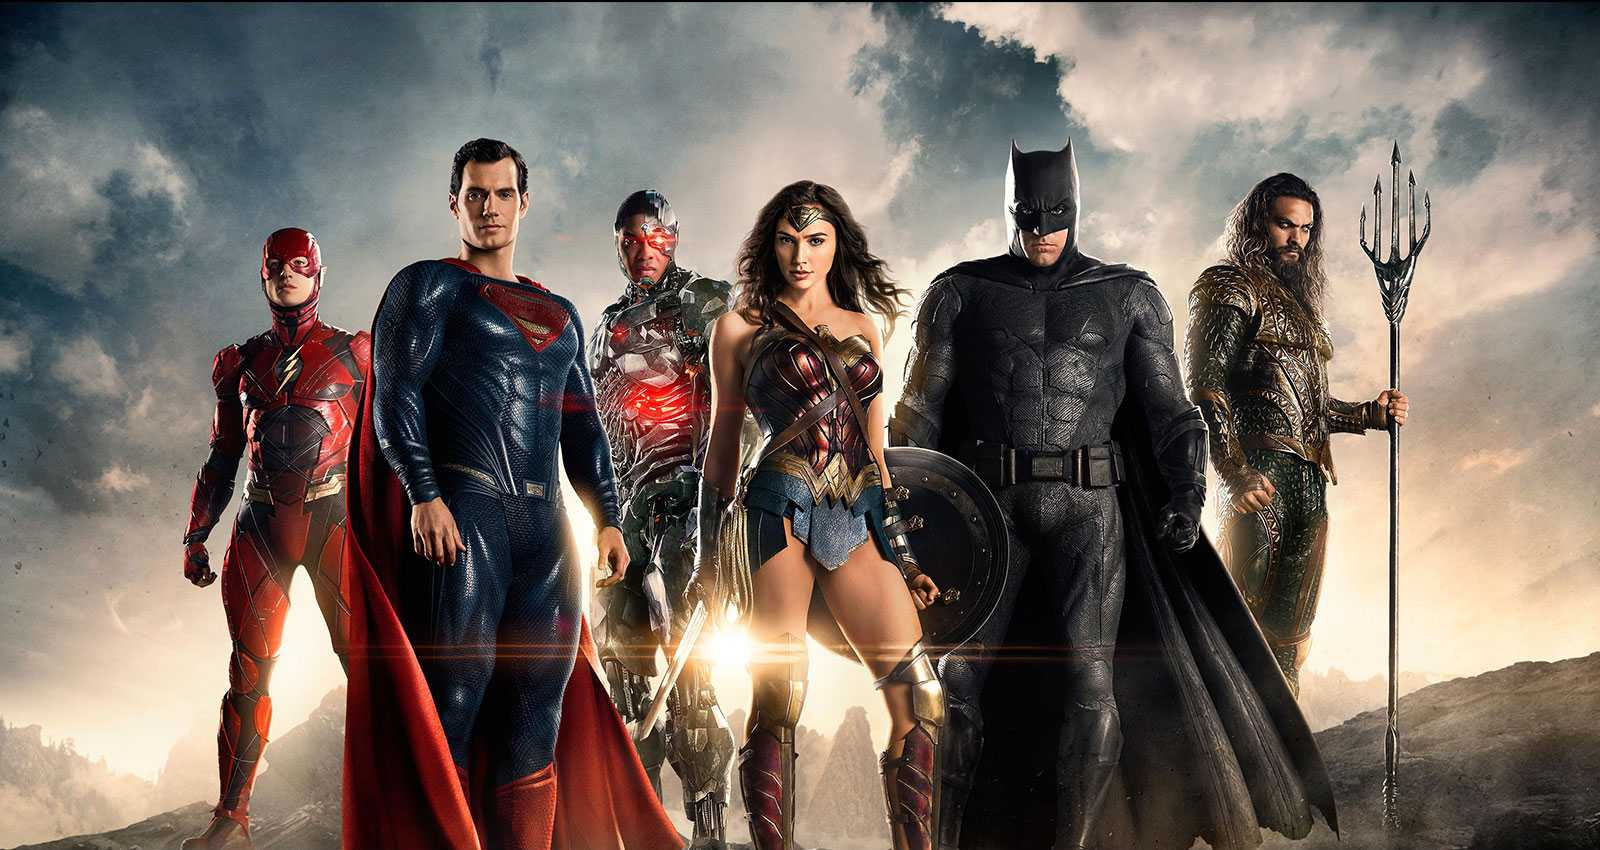 'Justice League' Undergoes Reshoots | Justice League